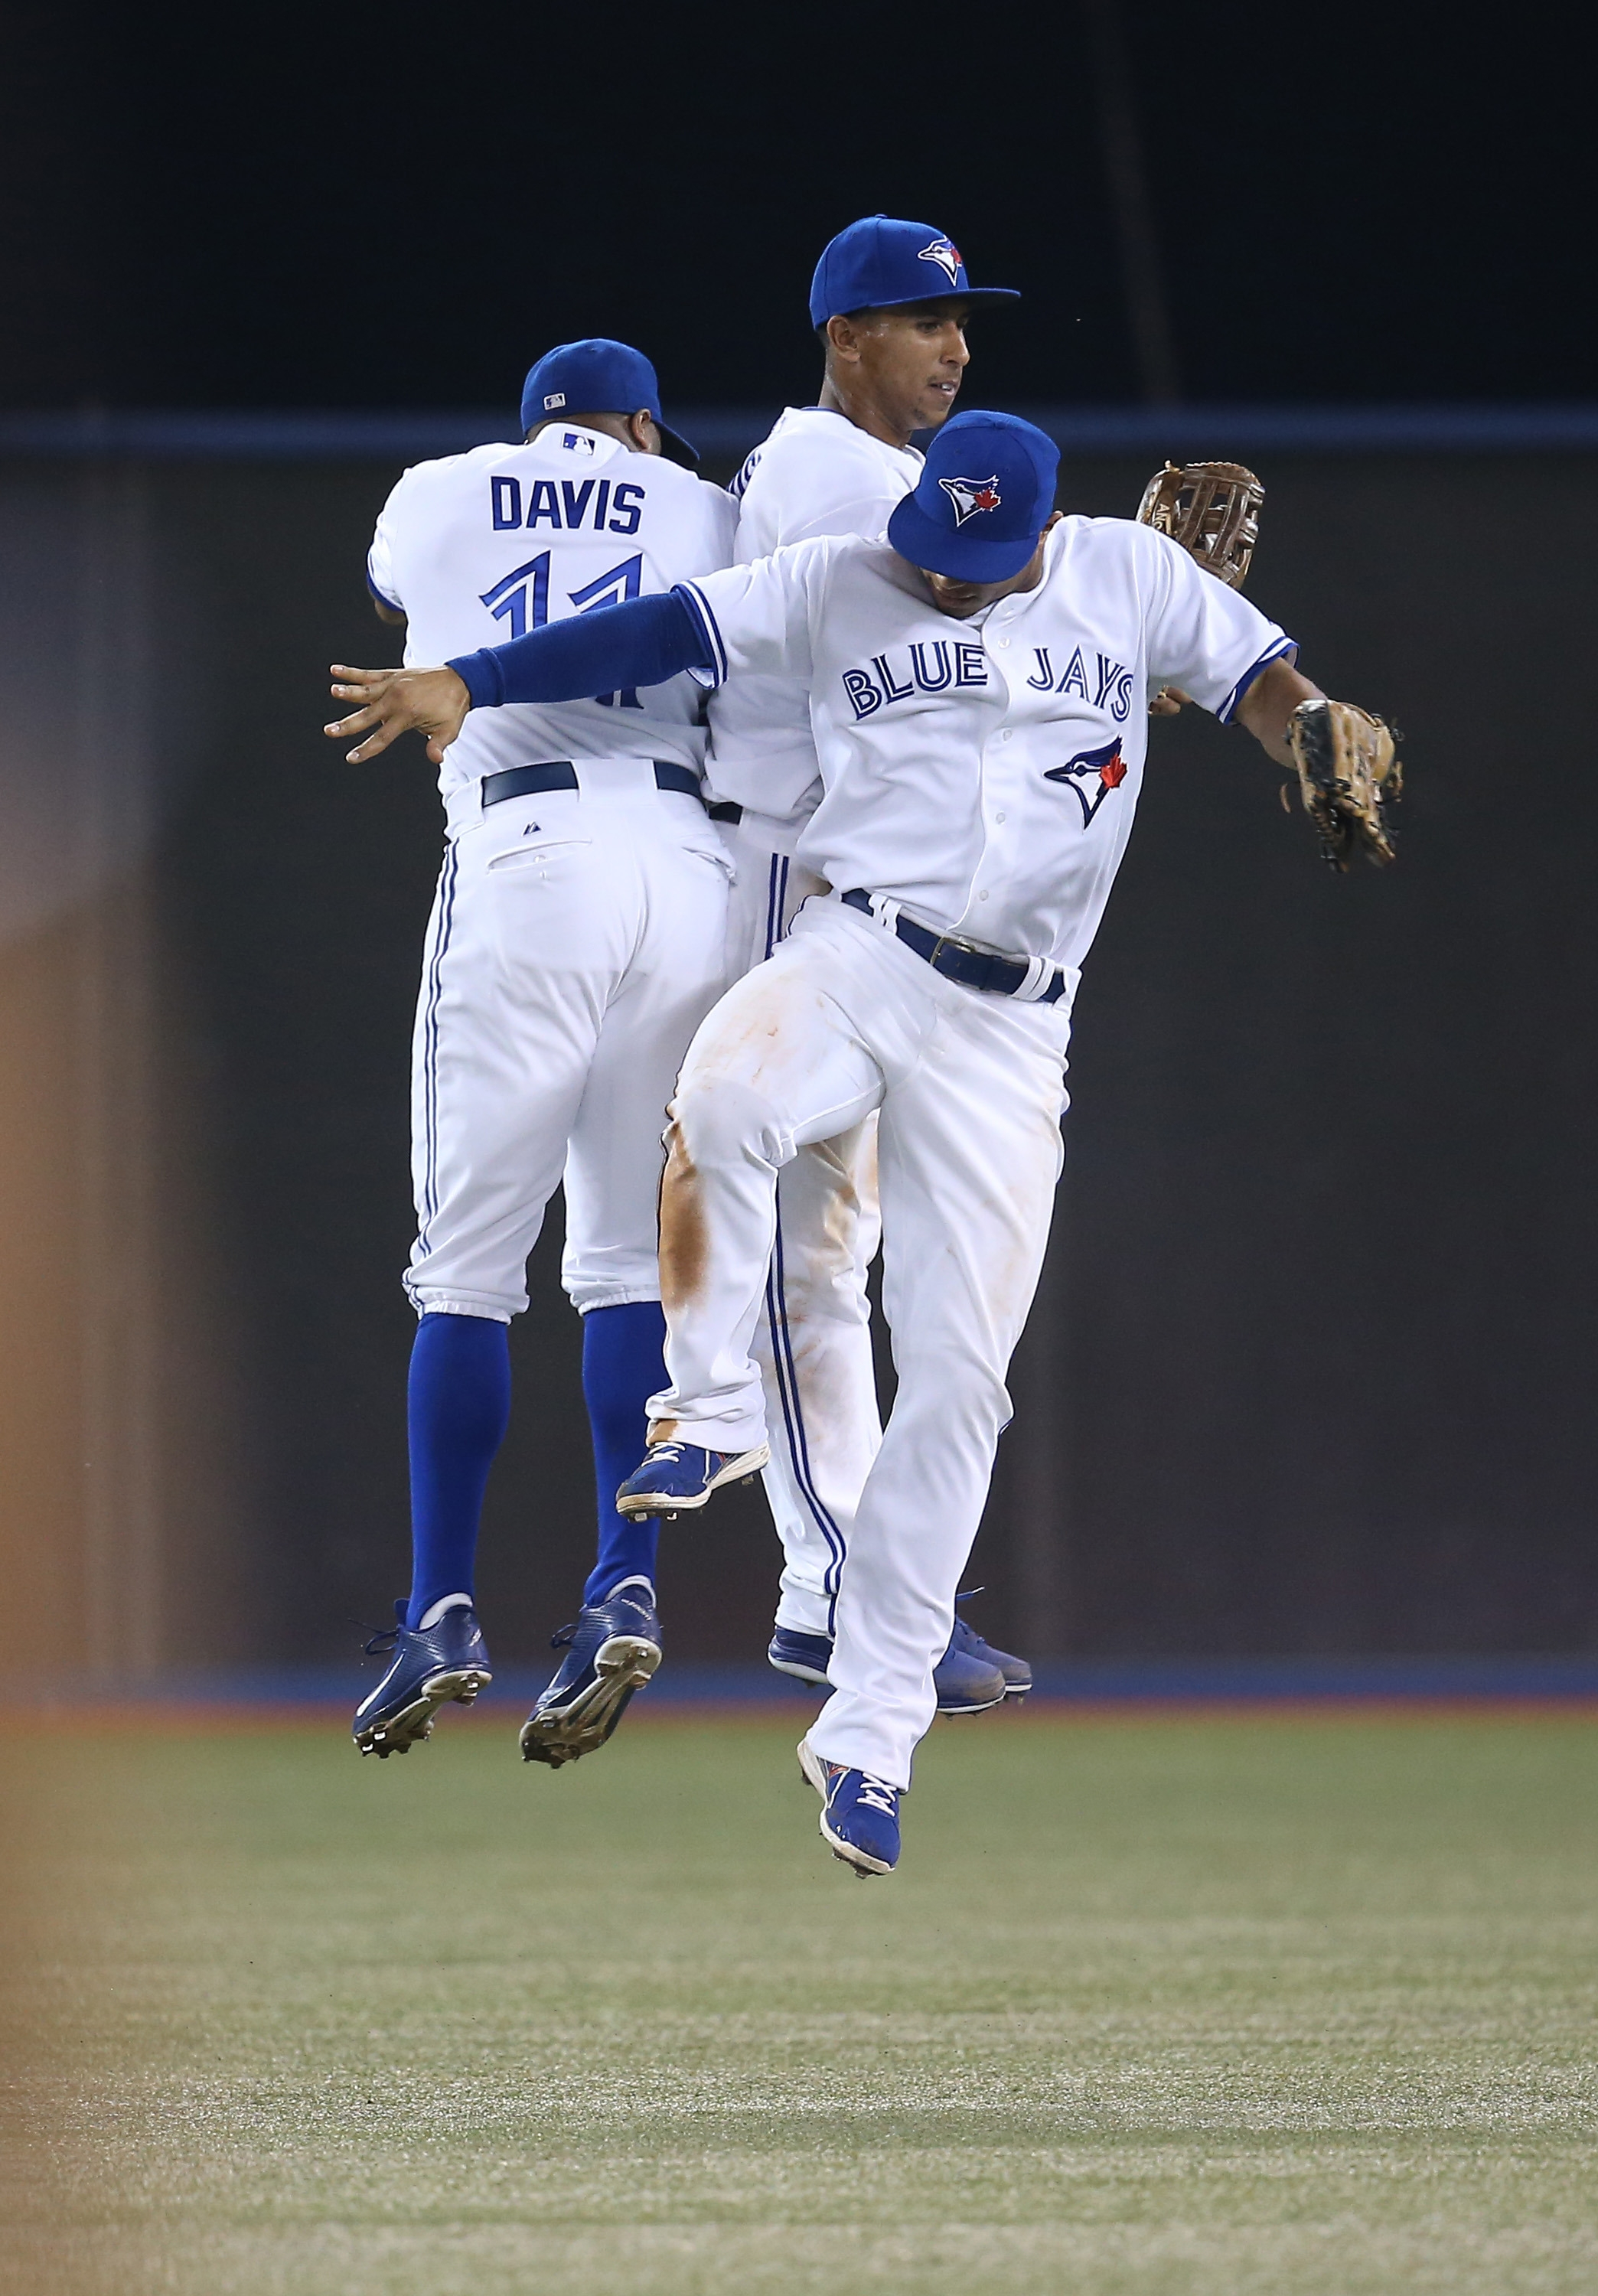 Blue Jays Rajai Davis, left, Anthony Gose, center, and Moises Sierra, foreground, celebrate their victory over the Yankees in Toronto on Wednesday.